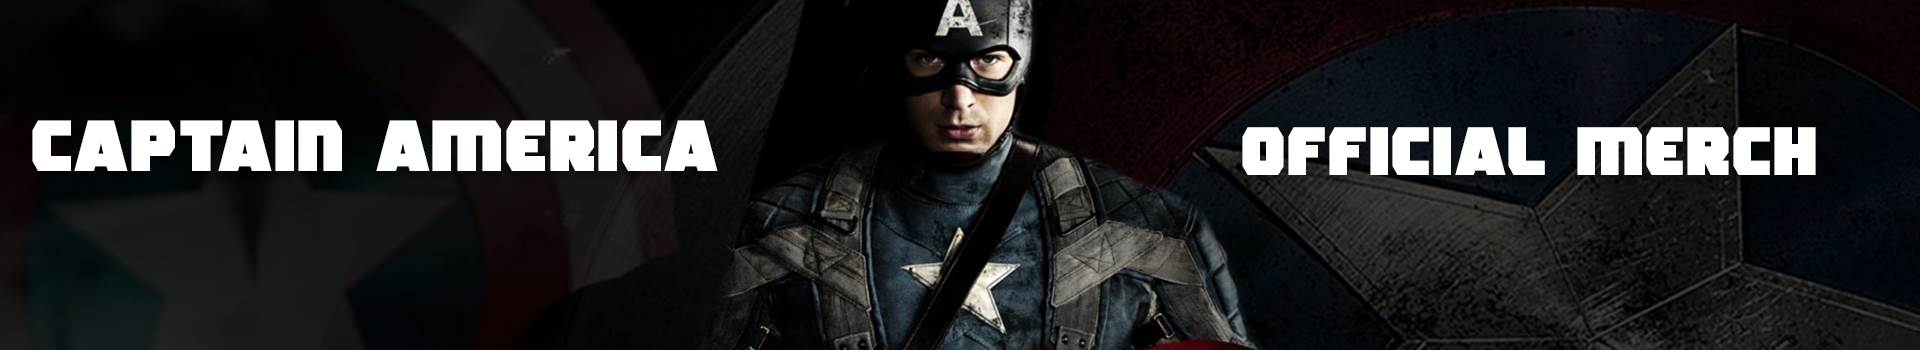 Captain America top banner